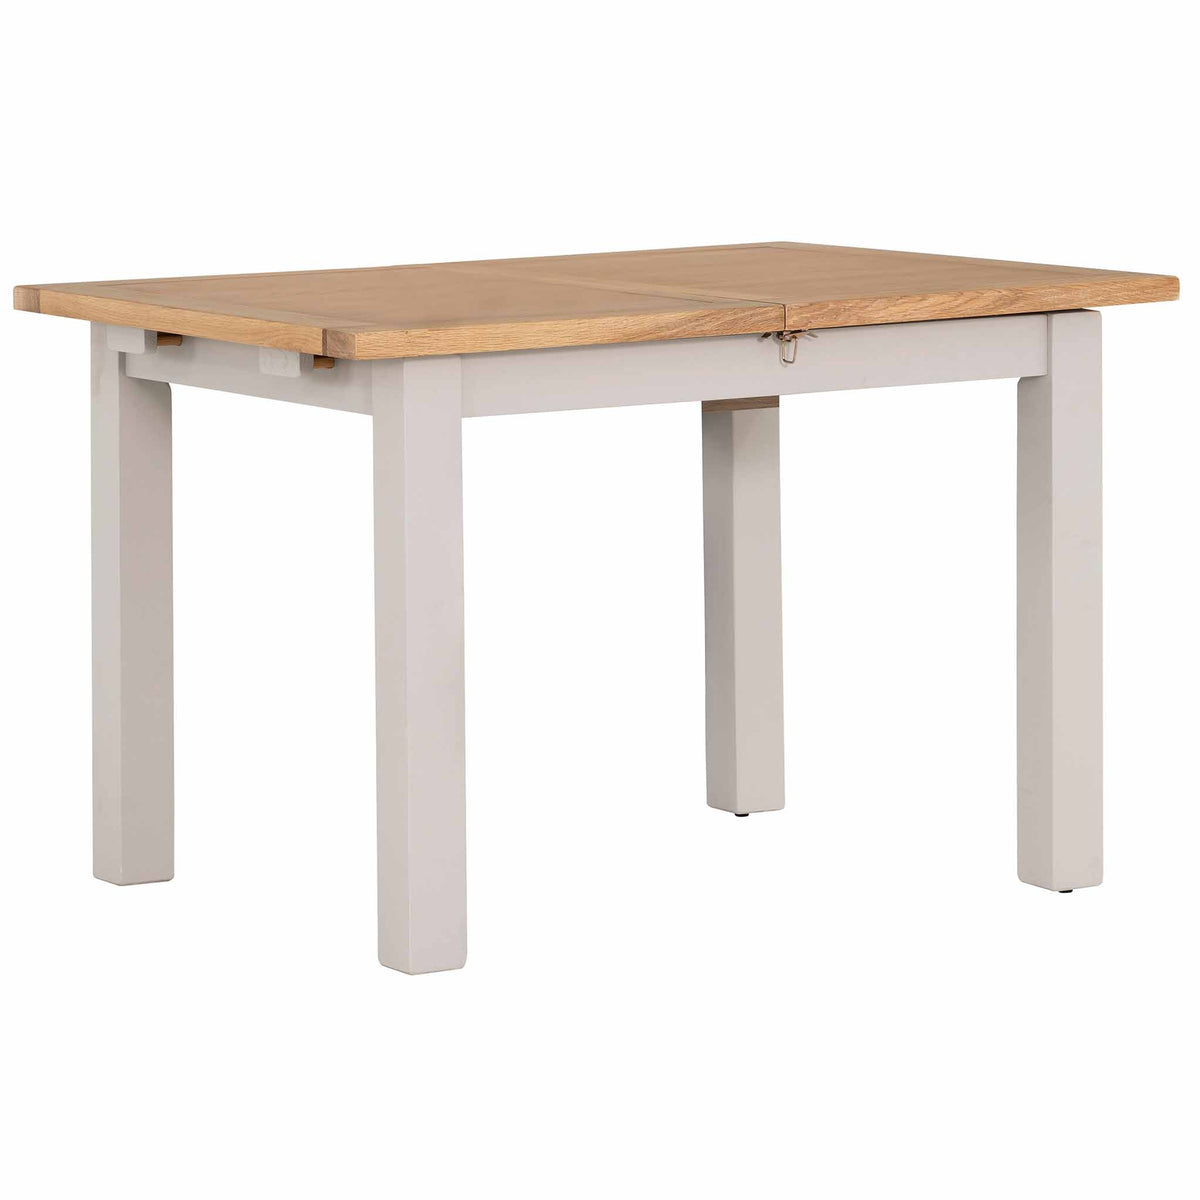 Compact view of the Charlestown Grey Extendable Dining Table from Roseland Furniture